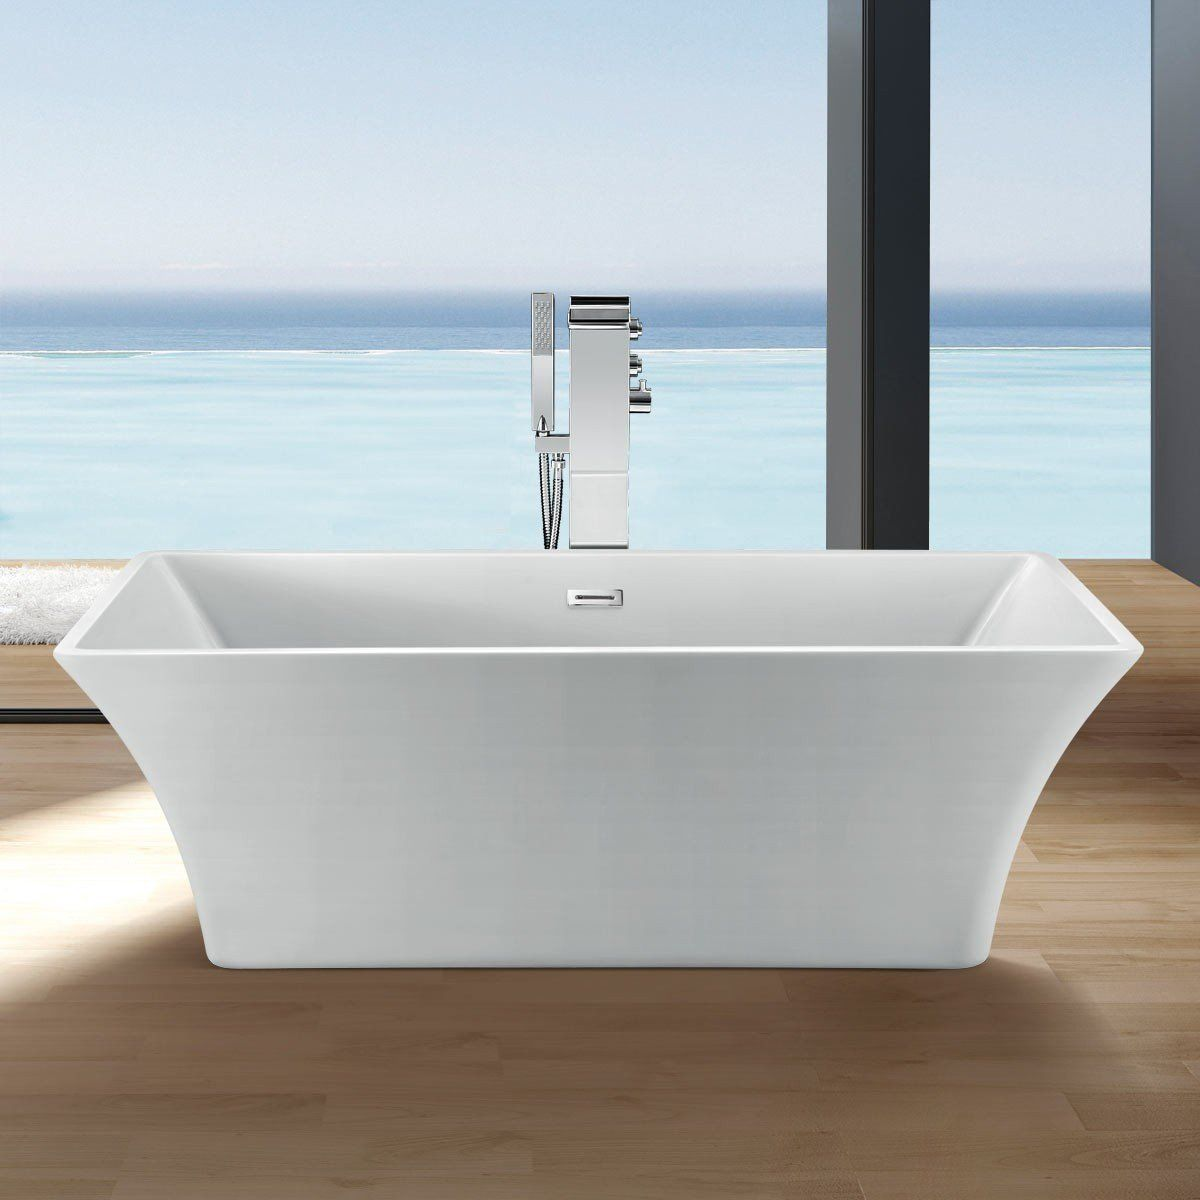 Dax Acrylic Double Ended Freestanding Tub No Faucet Drillings